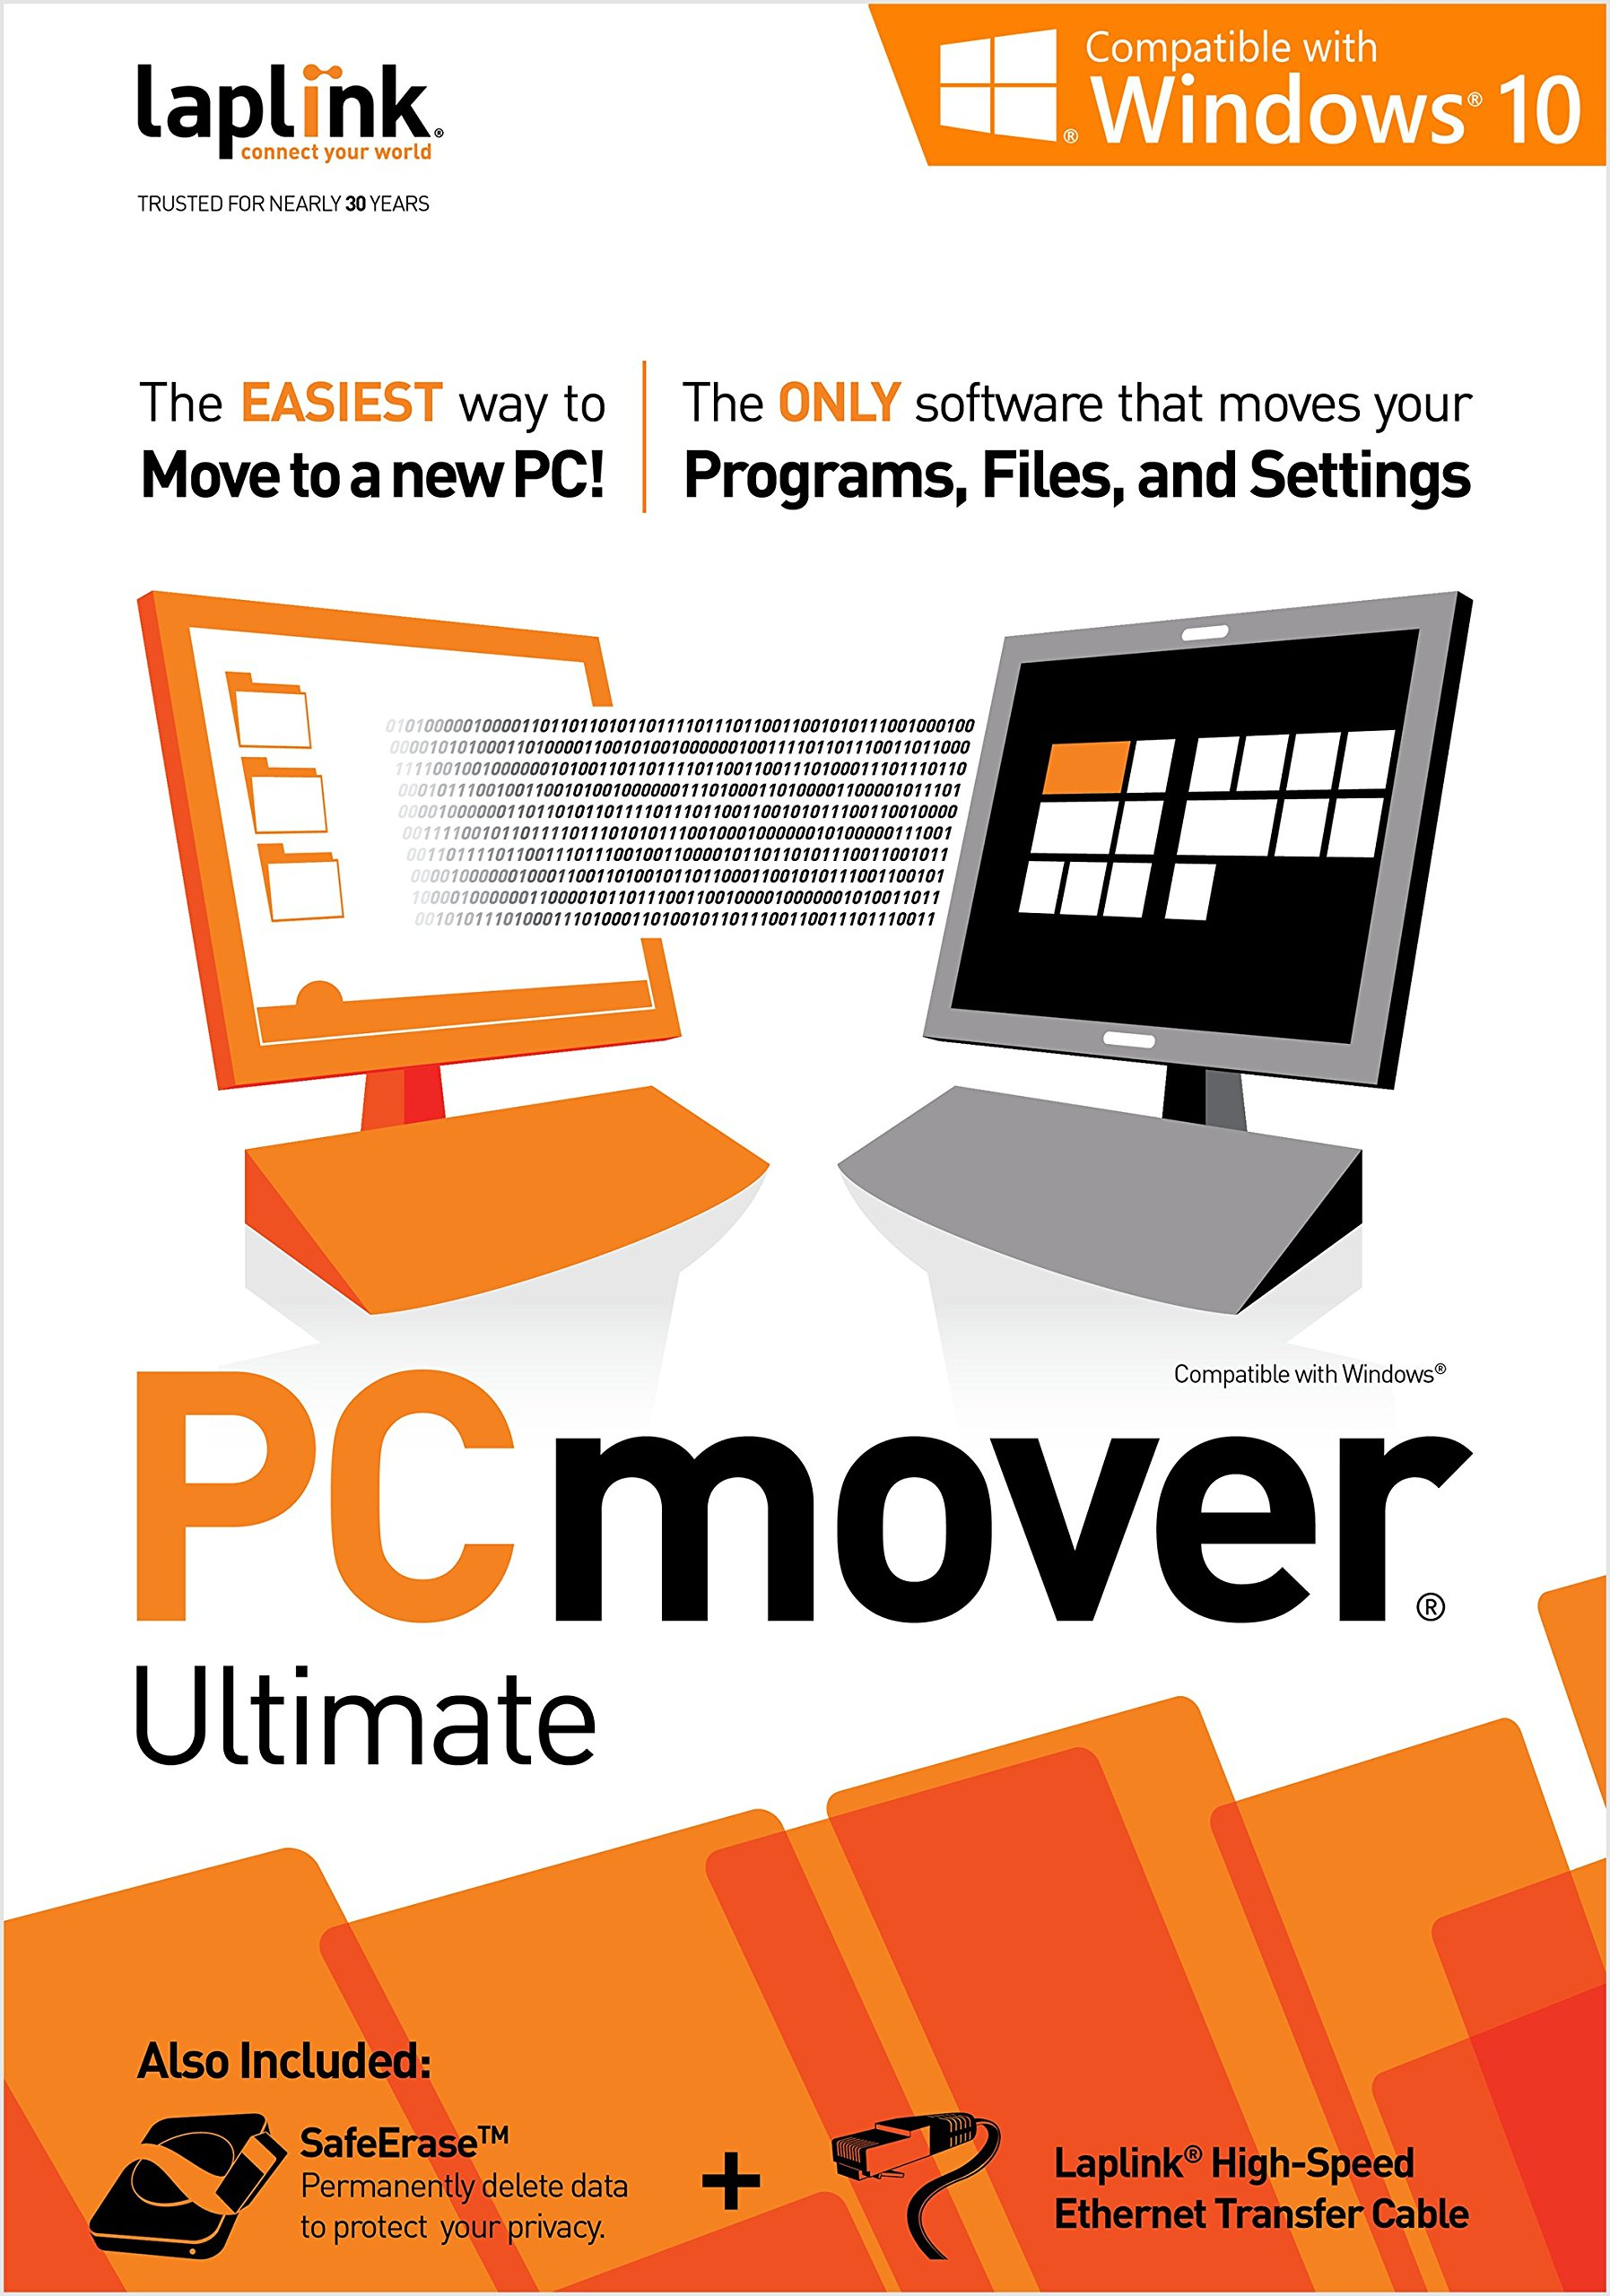 Laplink Pcmover Ultimate 10 - 1 Use 10